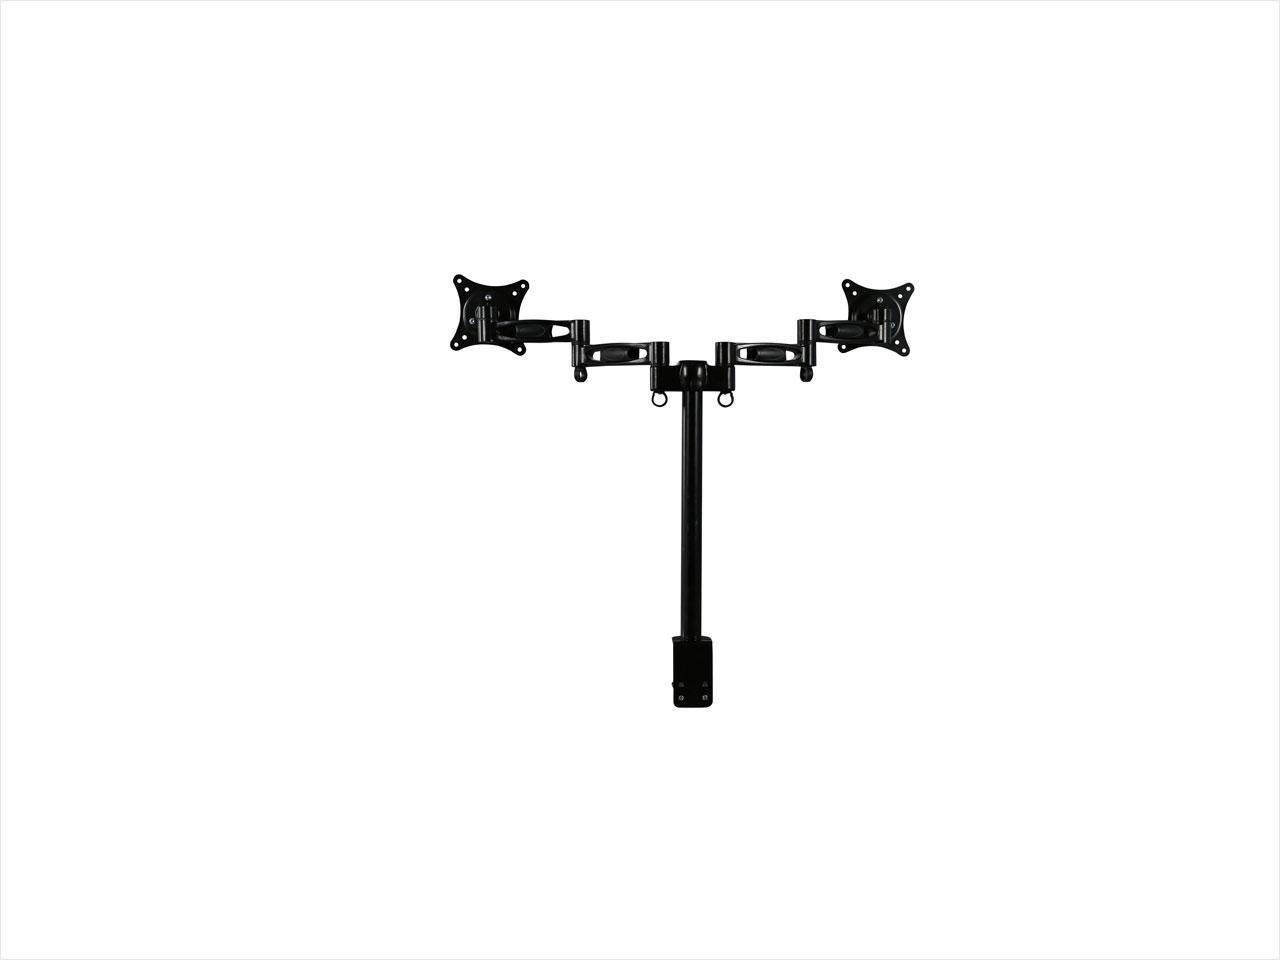 "Rosewill RMS-DDM05 Dual Monitor Desk Mount, Support 13"" - 27"" LCD / LED Display VESA 75 / 100, Tilt +/-15 Degree, Swivel 360 Degree, Rotate 360 Degree, Max. Load: 17.64 lbs."